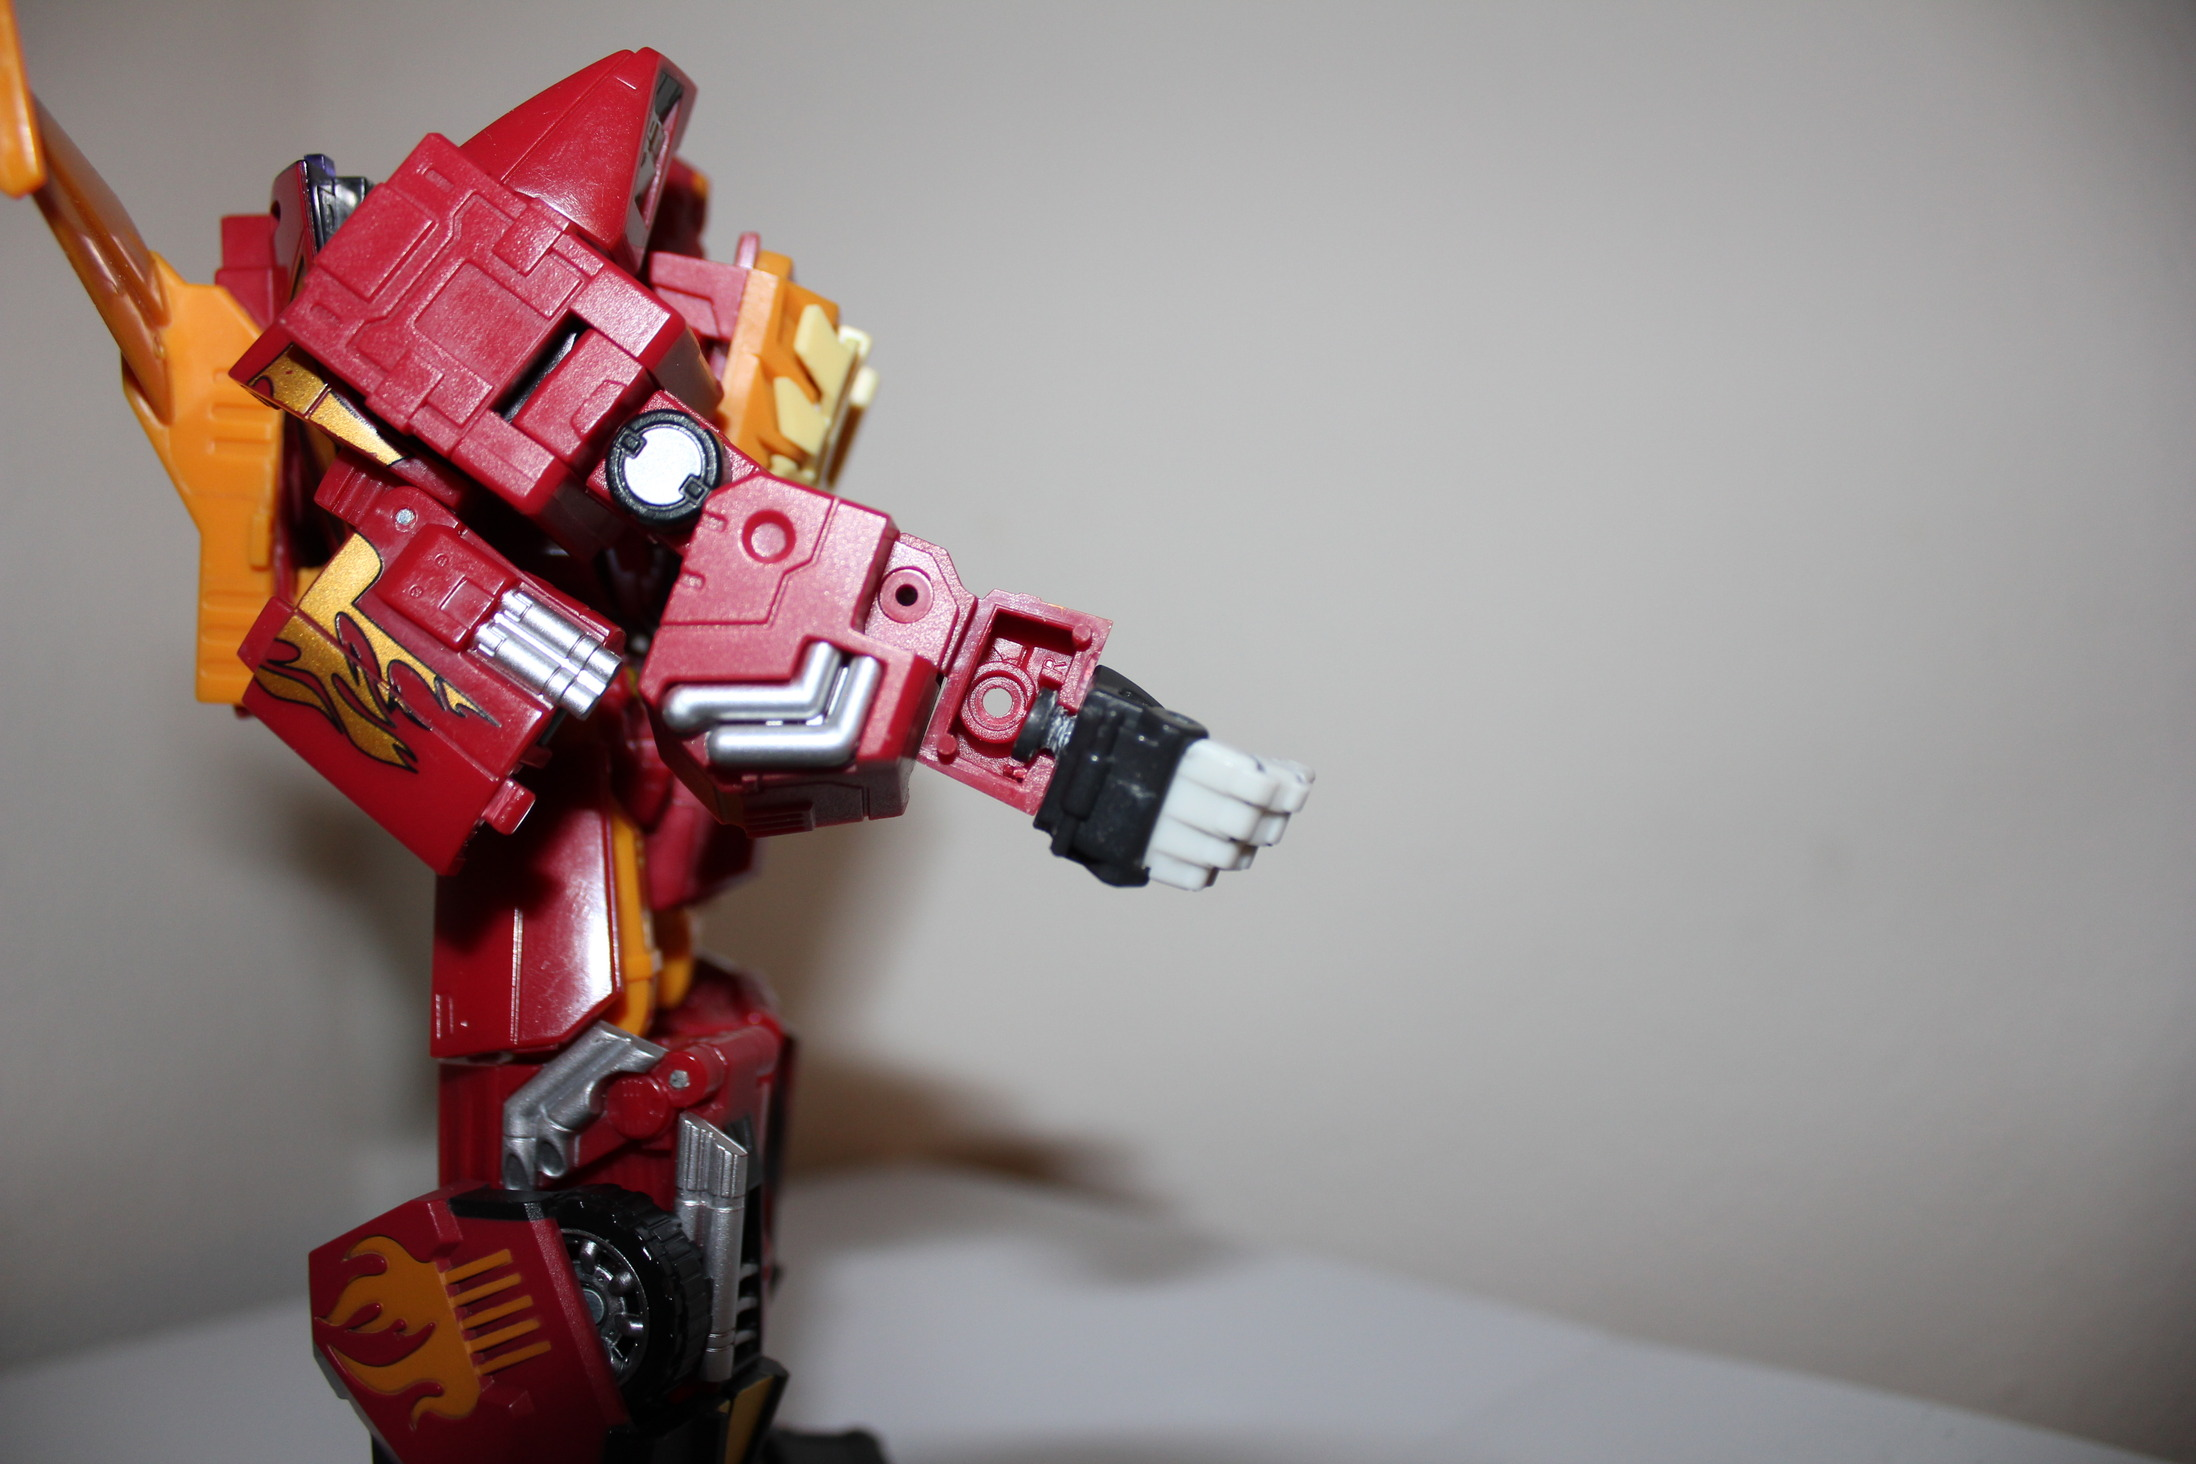 FansProject Protector Armor - Adding Articulated Hands!-img_1563.jpg